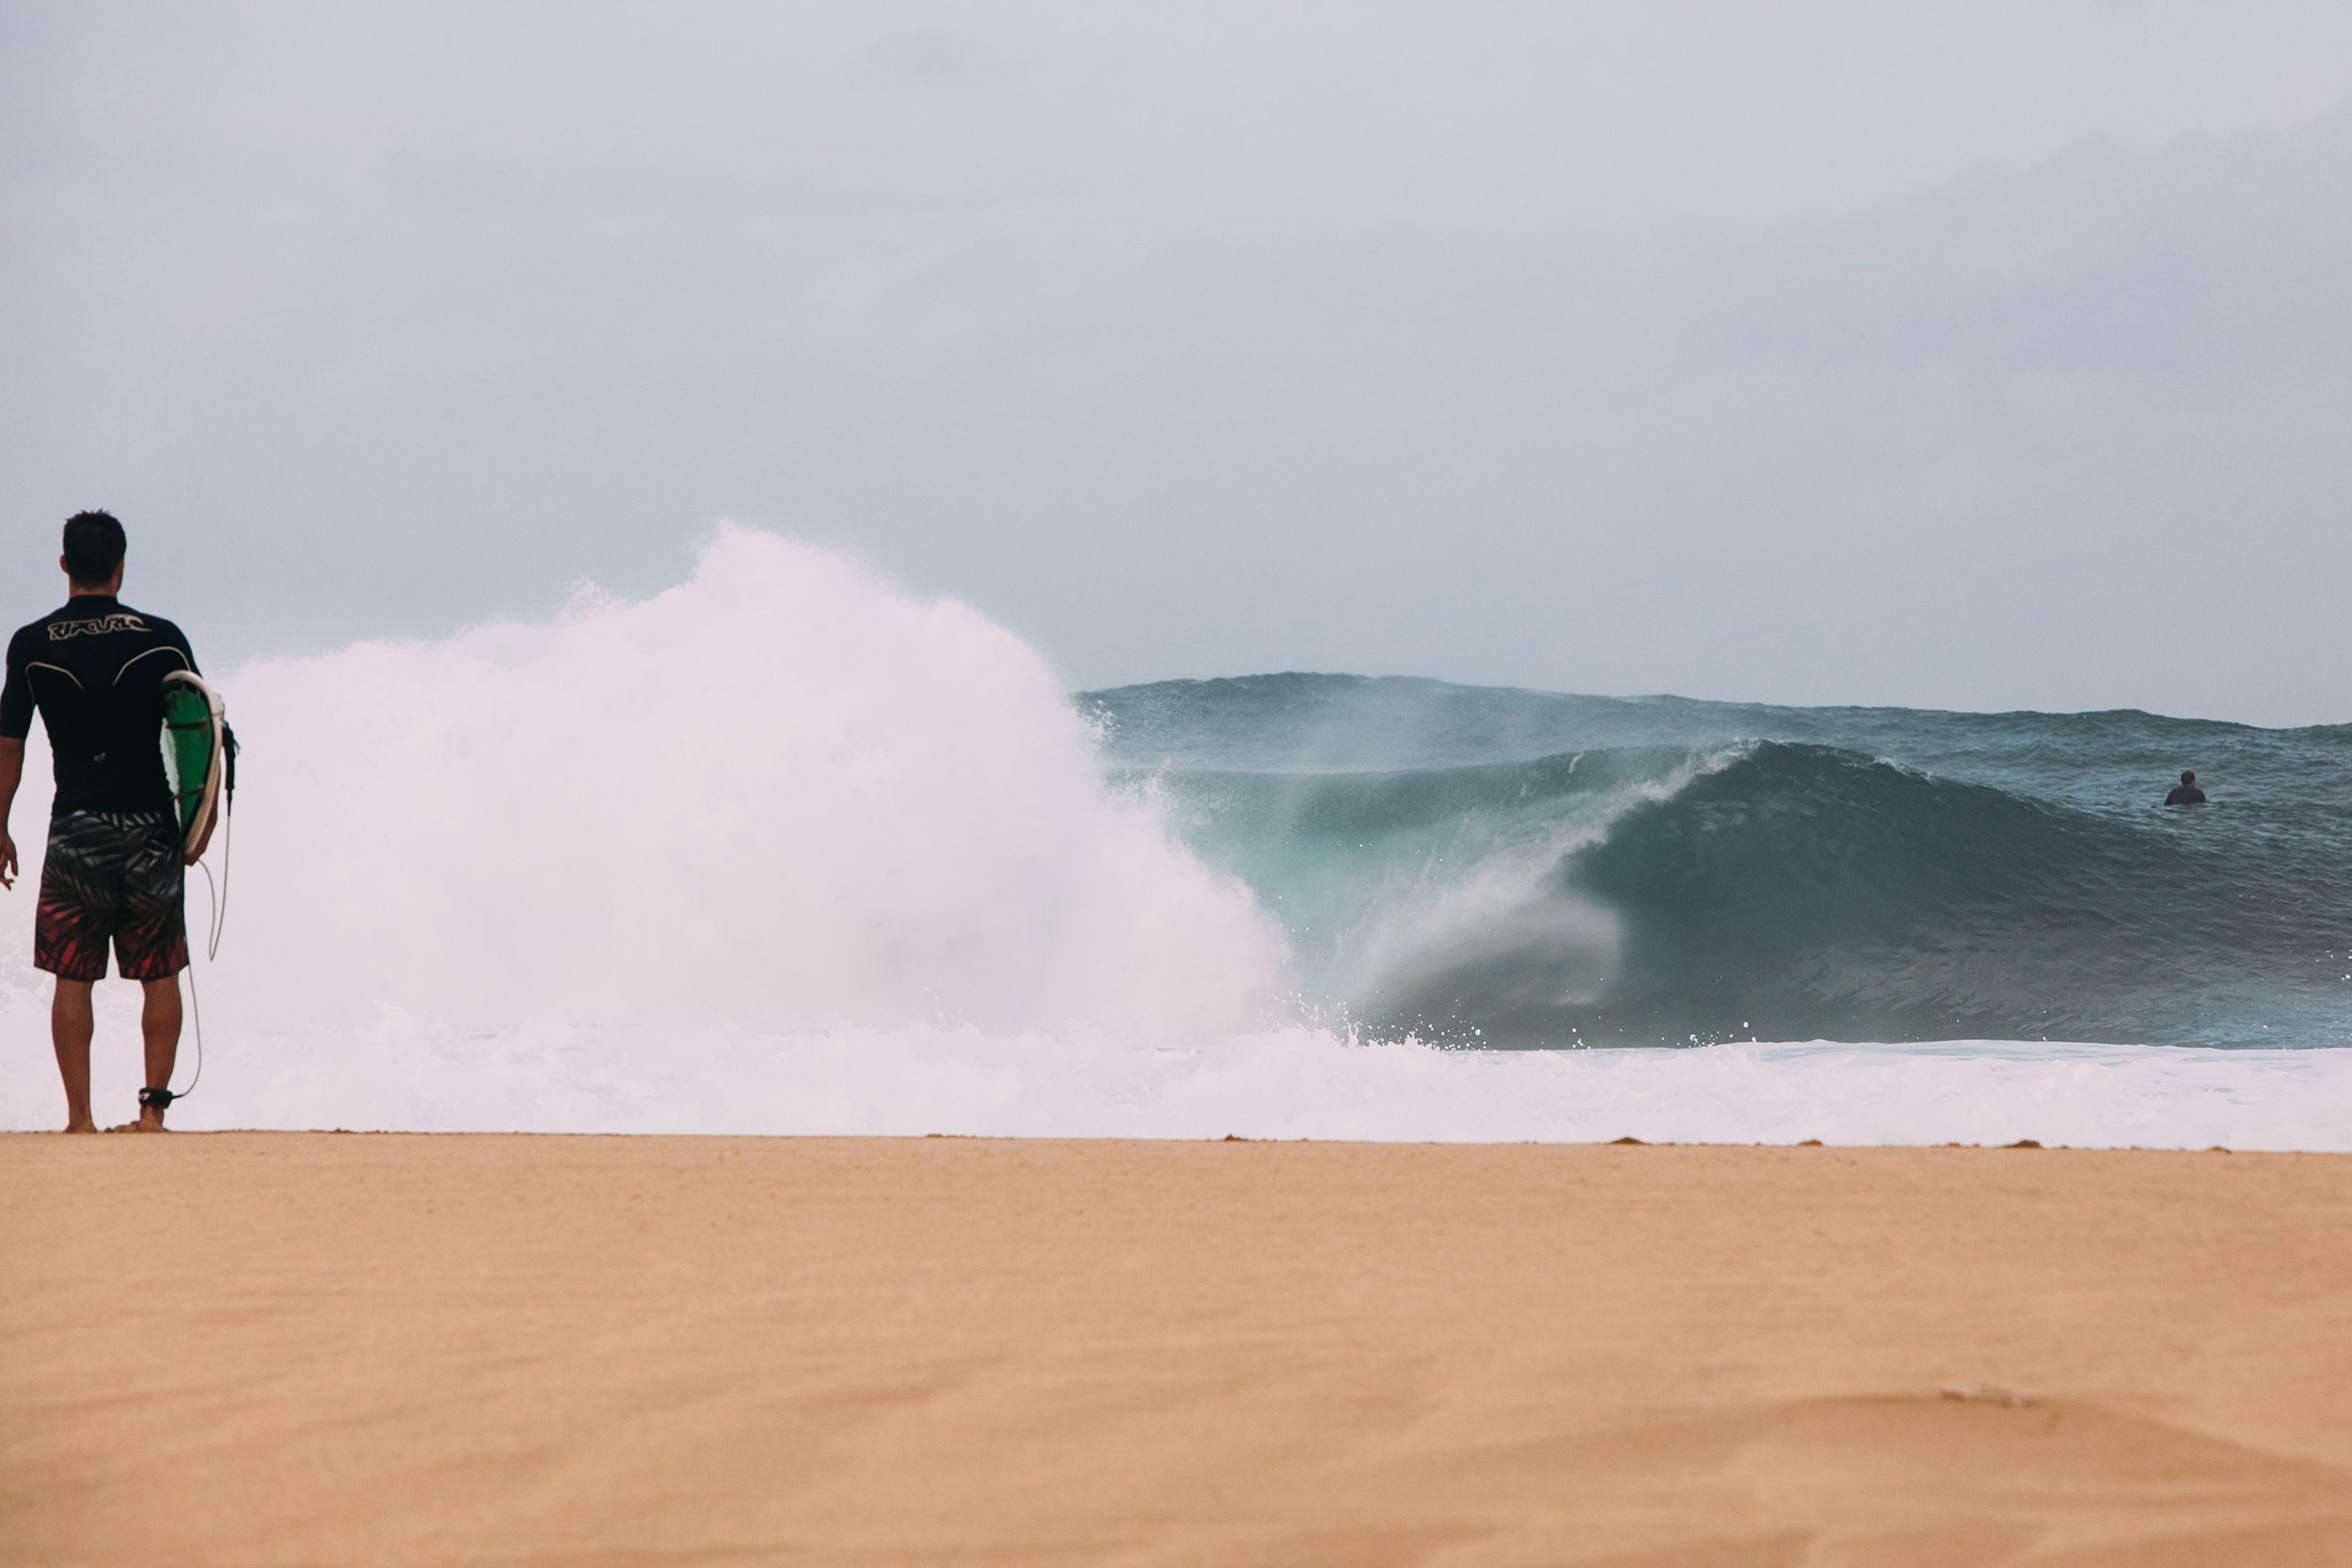 one of a set North Shore Oahu Hawaii surf photography ocean culture life a journey around the Hawaiian islands in search of open waters surfers, sharks and other ocean life underwater photography wanderlust explore our oceans